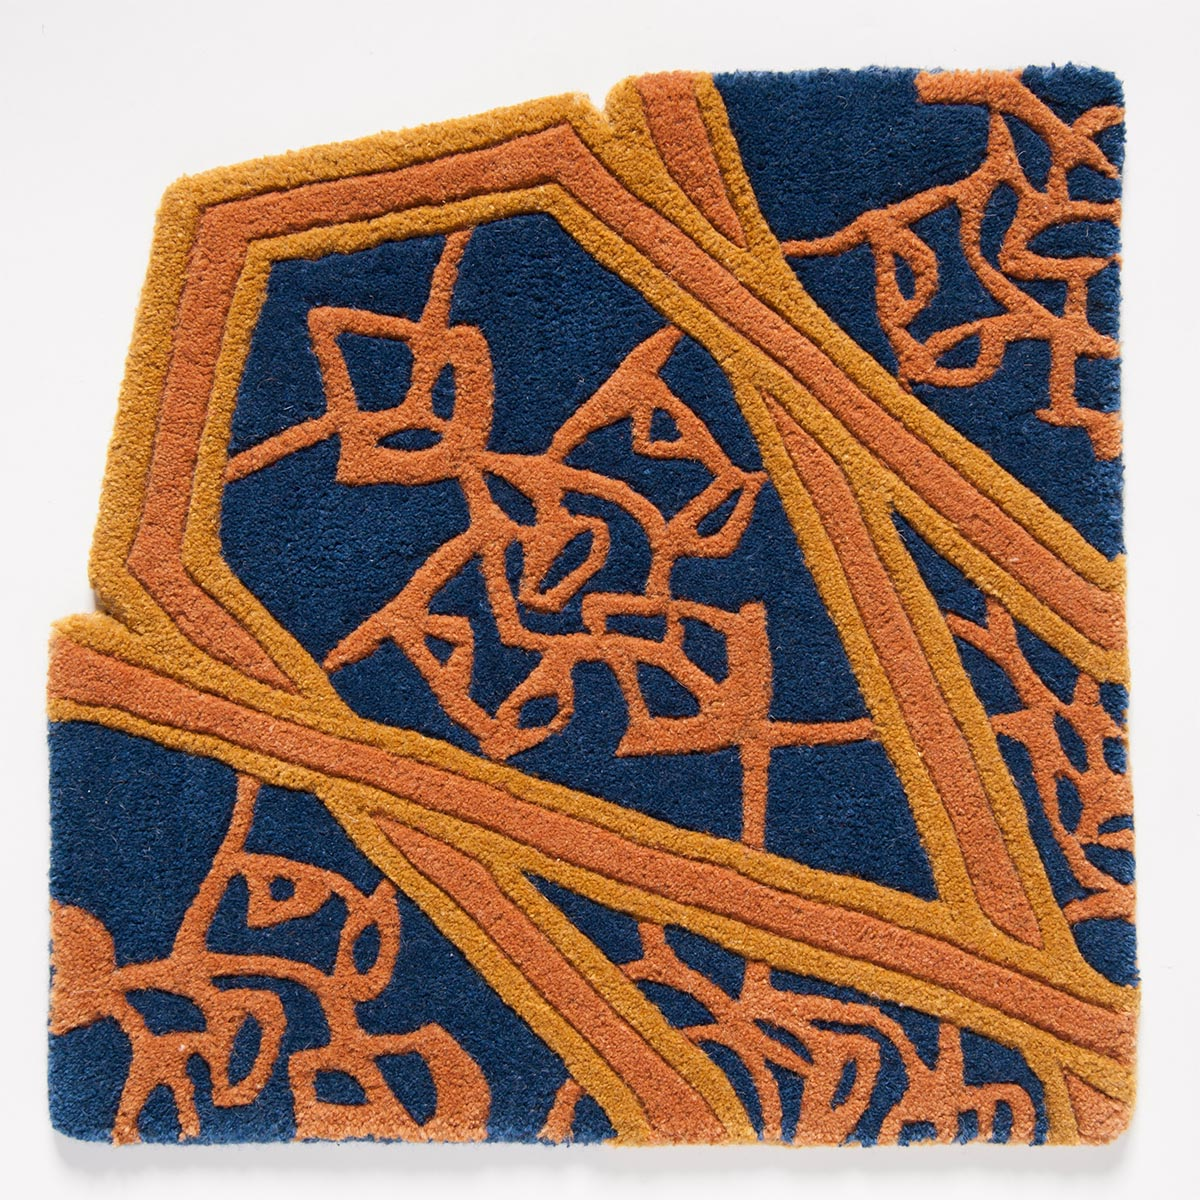 Tappeti, fine hand-crafted rugs & carpets  Interlaced